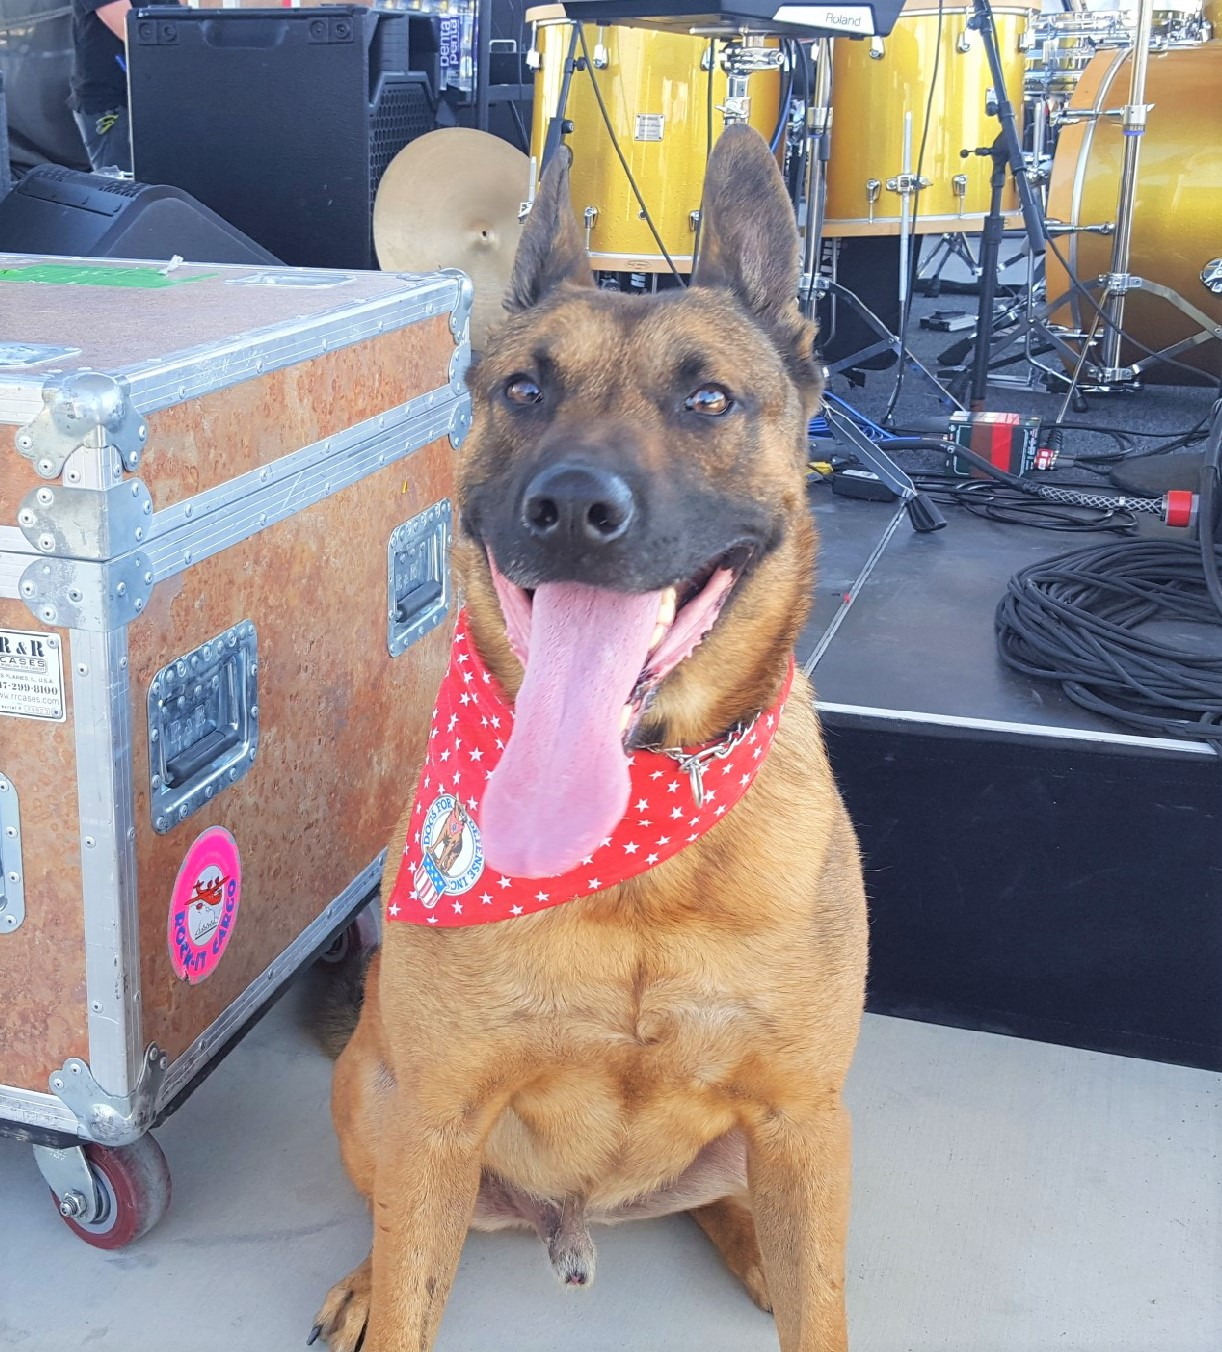 K-9 Pito - Specialty: Explosive DetectionBreed: Belgian MaliniosBirthdate: July 13, 2013Birthplace: SlovakiaColor: TanWeight: 85 PoundsCertification: California POST BoardFood: NutriSource, PerformanceHometown: Grover Beach, California